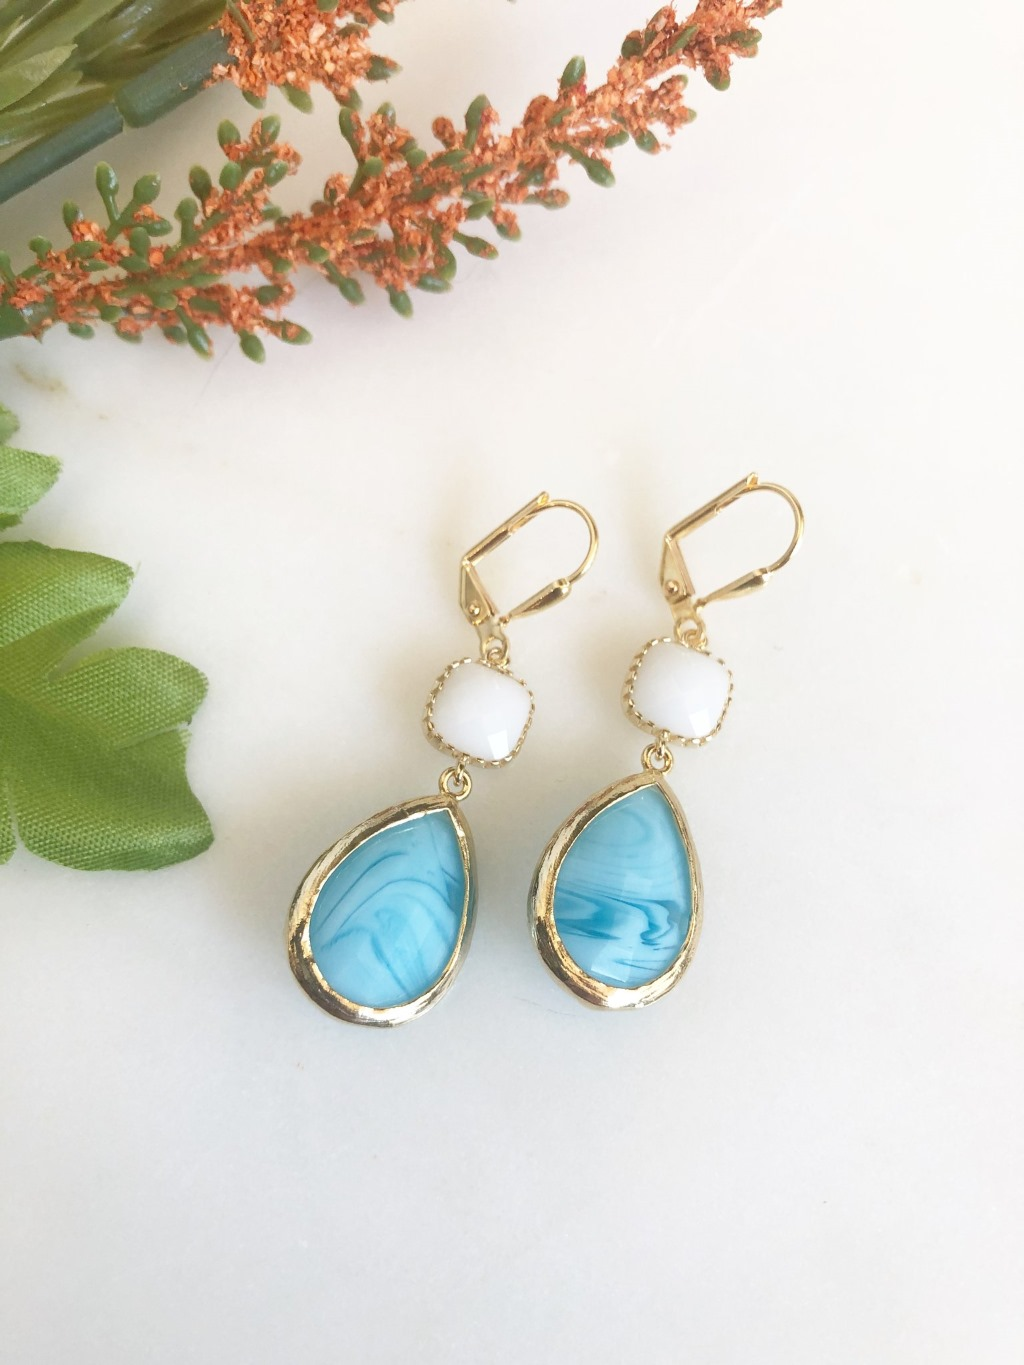 Sky Blue Swirl and White Glass Drop Earrings in Gold.